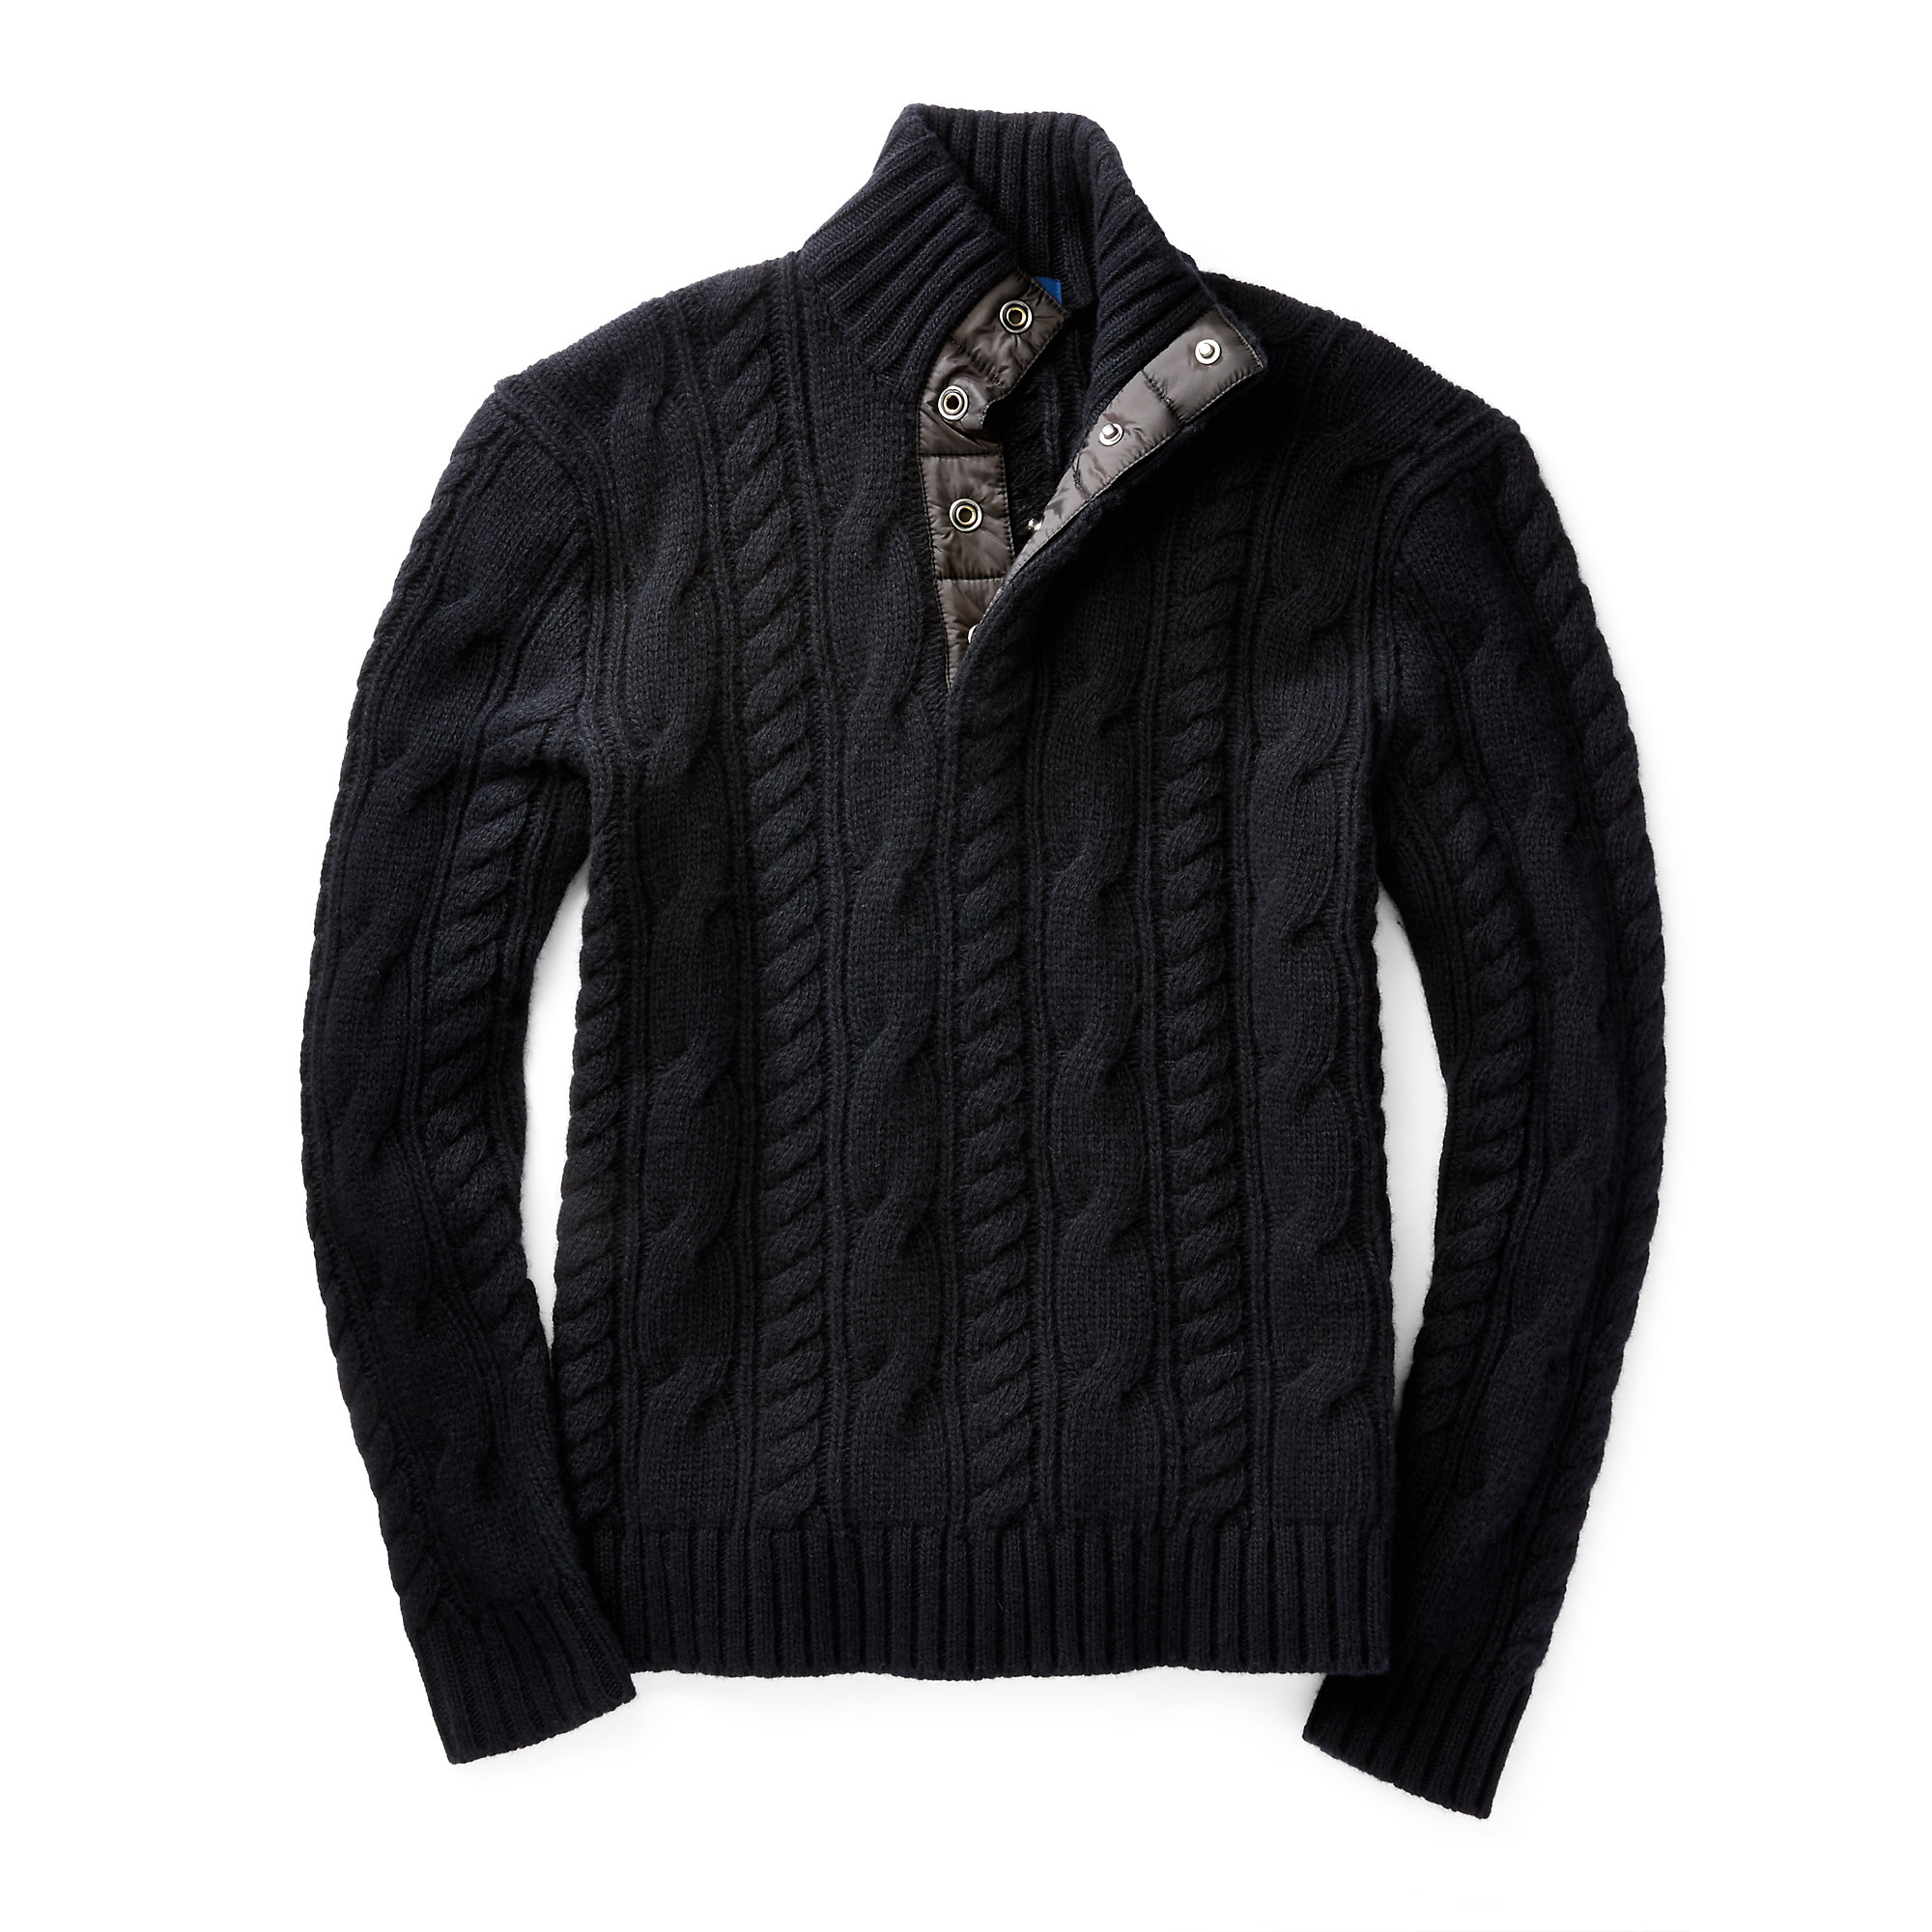 Shop for men's black wool sweater online at Men's Wearhouse. Browse the latest black wool sweater styles & selection from techclux.gq, the leader in .